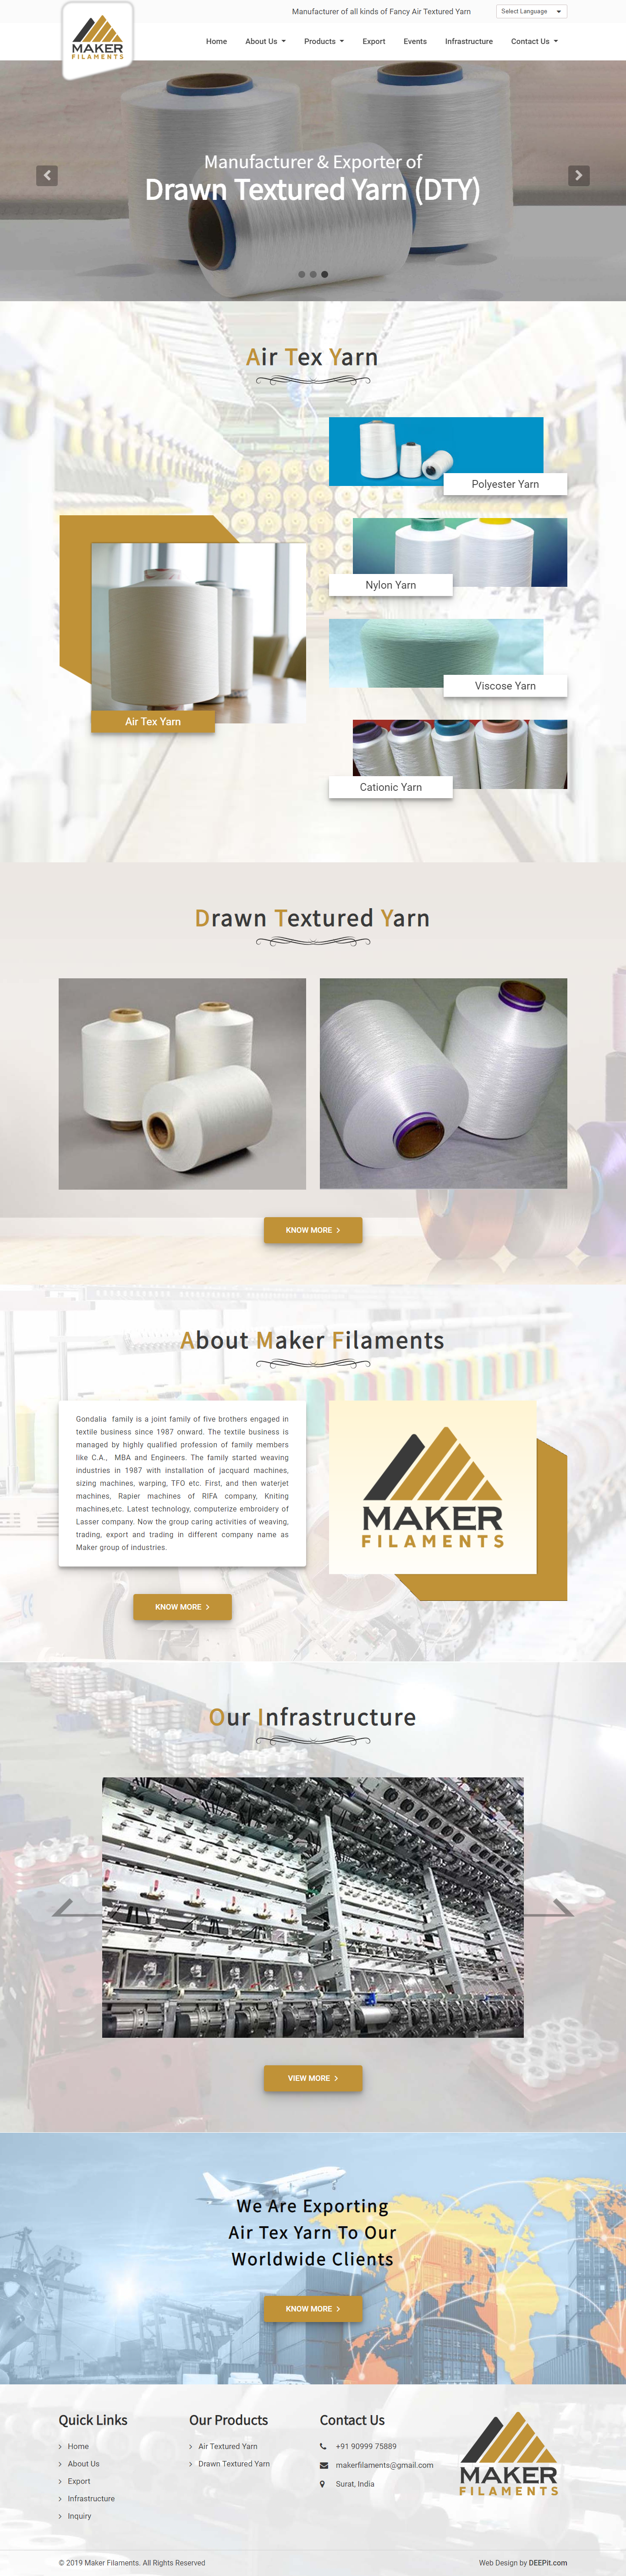 Maker Filaments